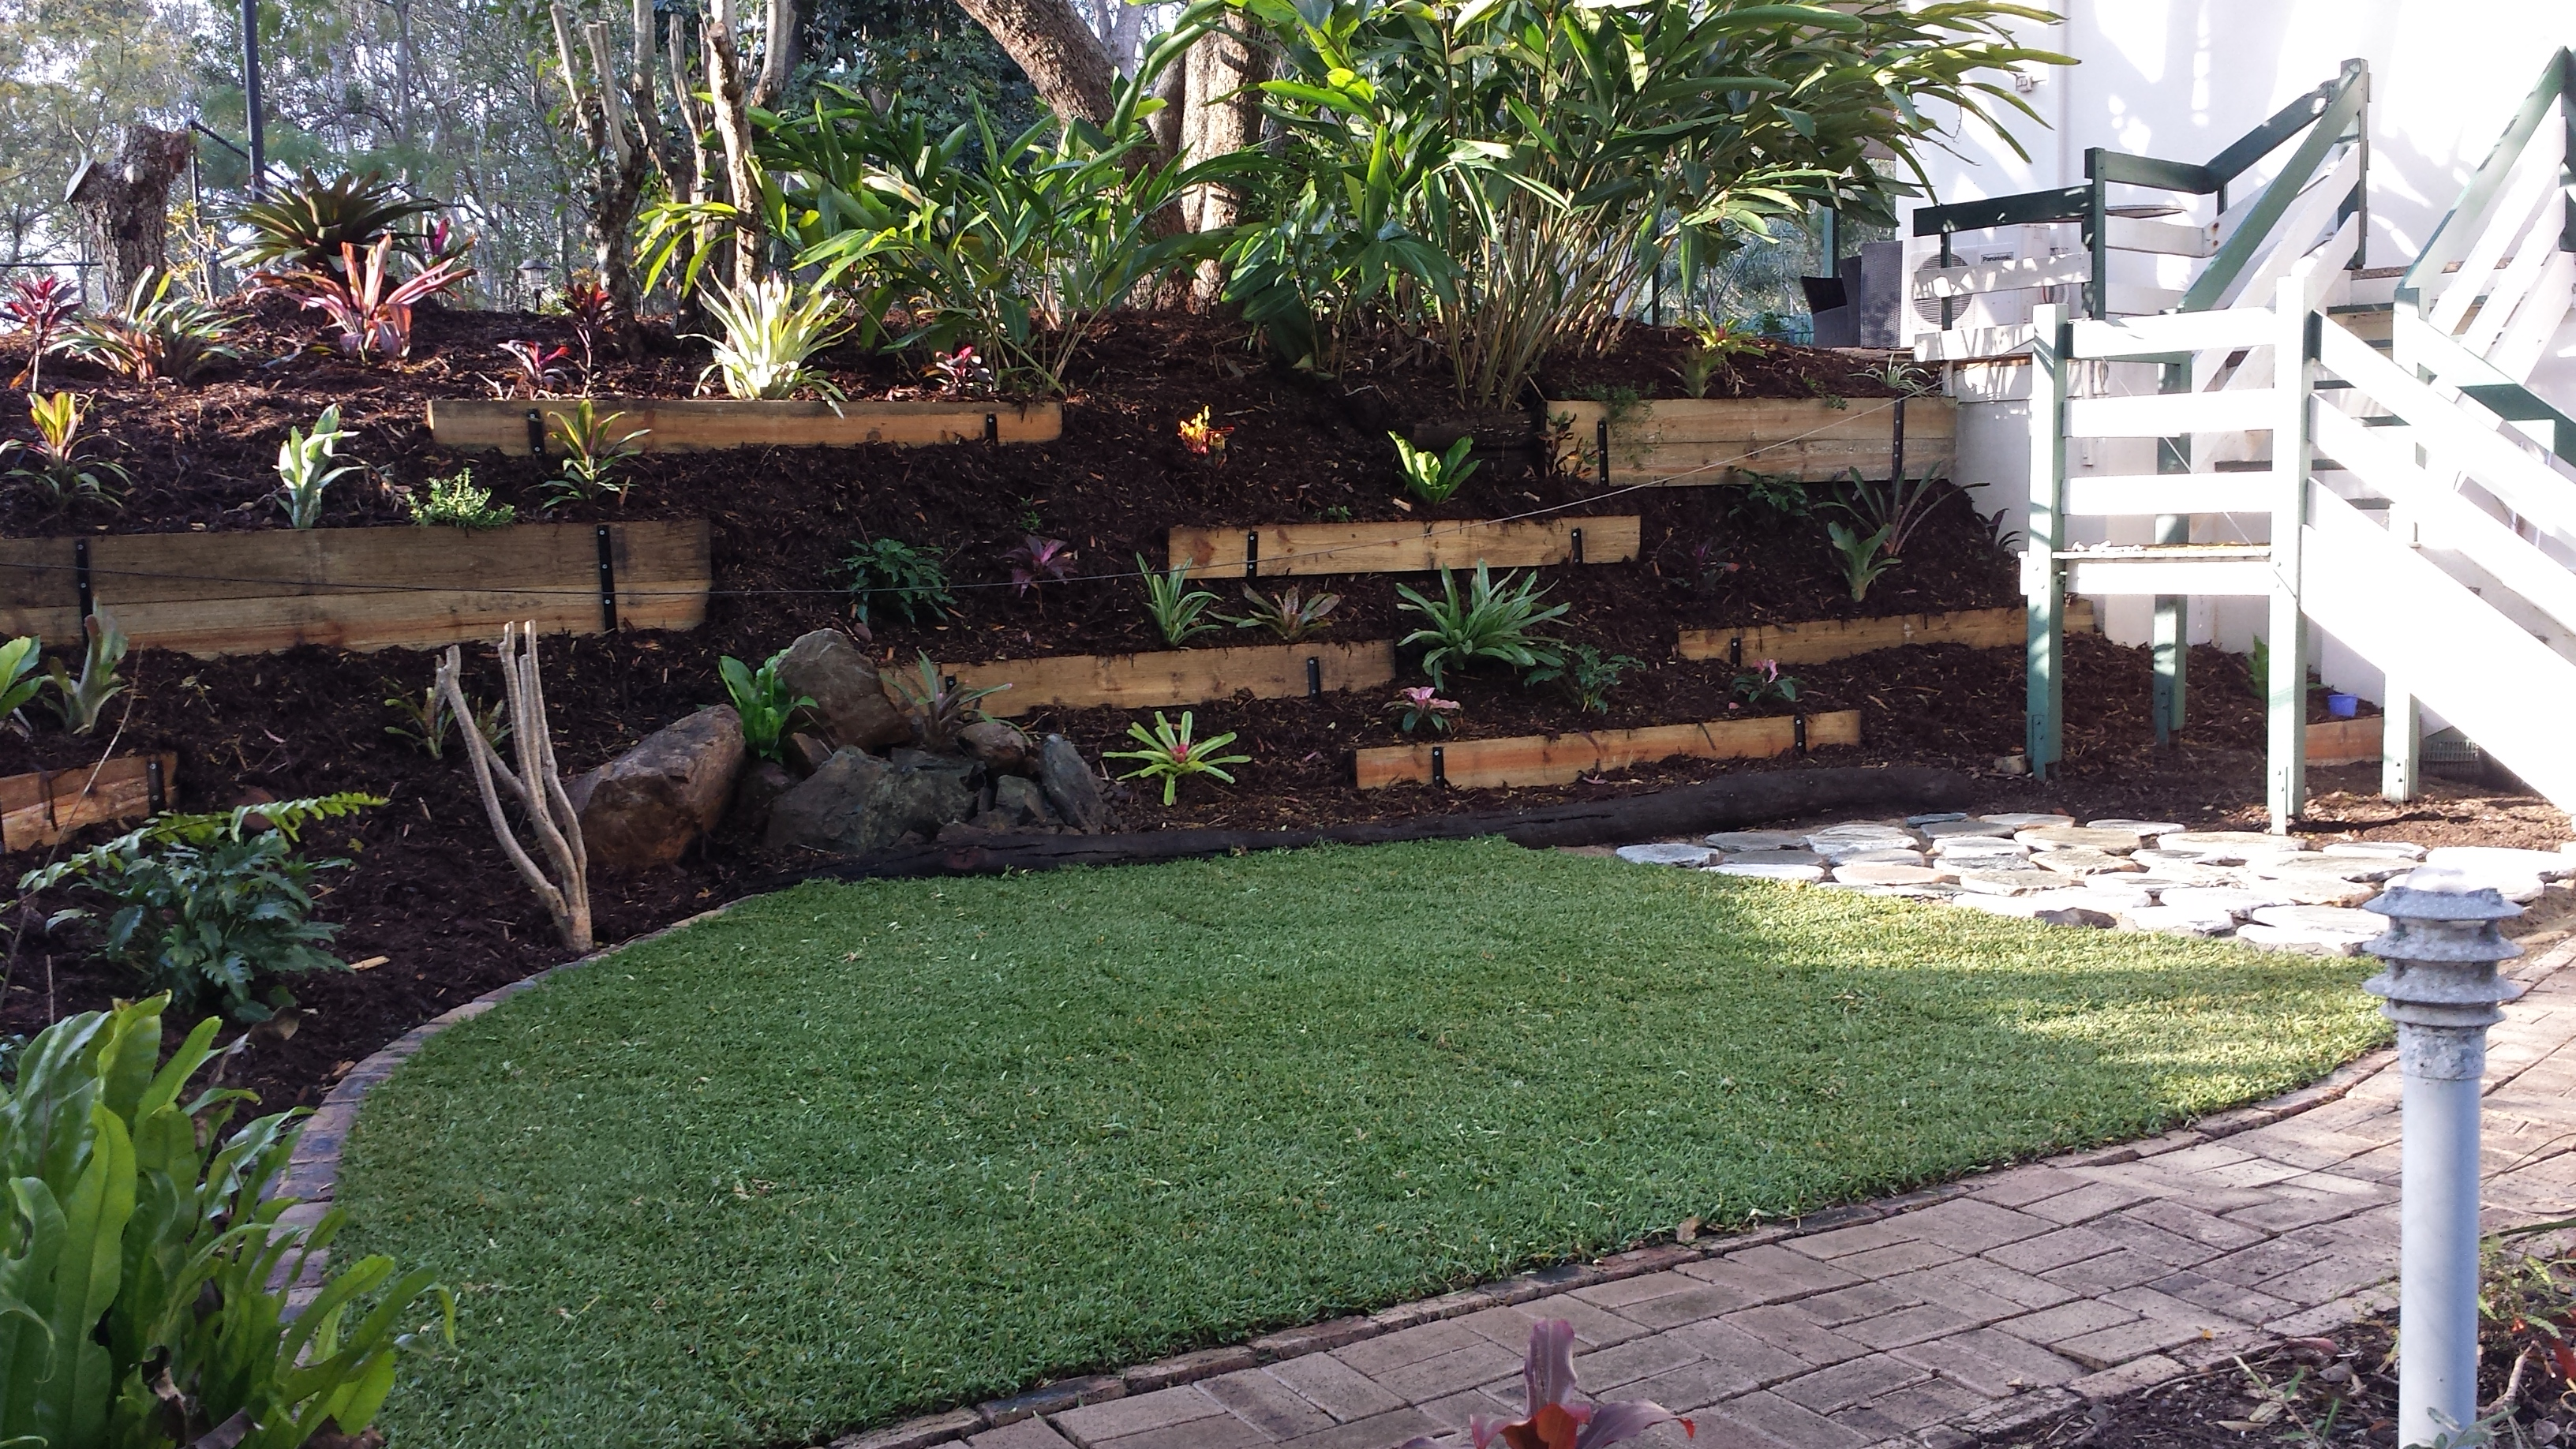 garden designs garden ideas in brisbane queensland au